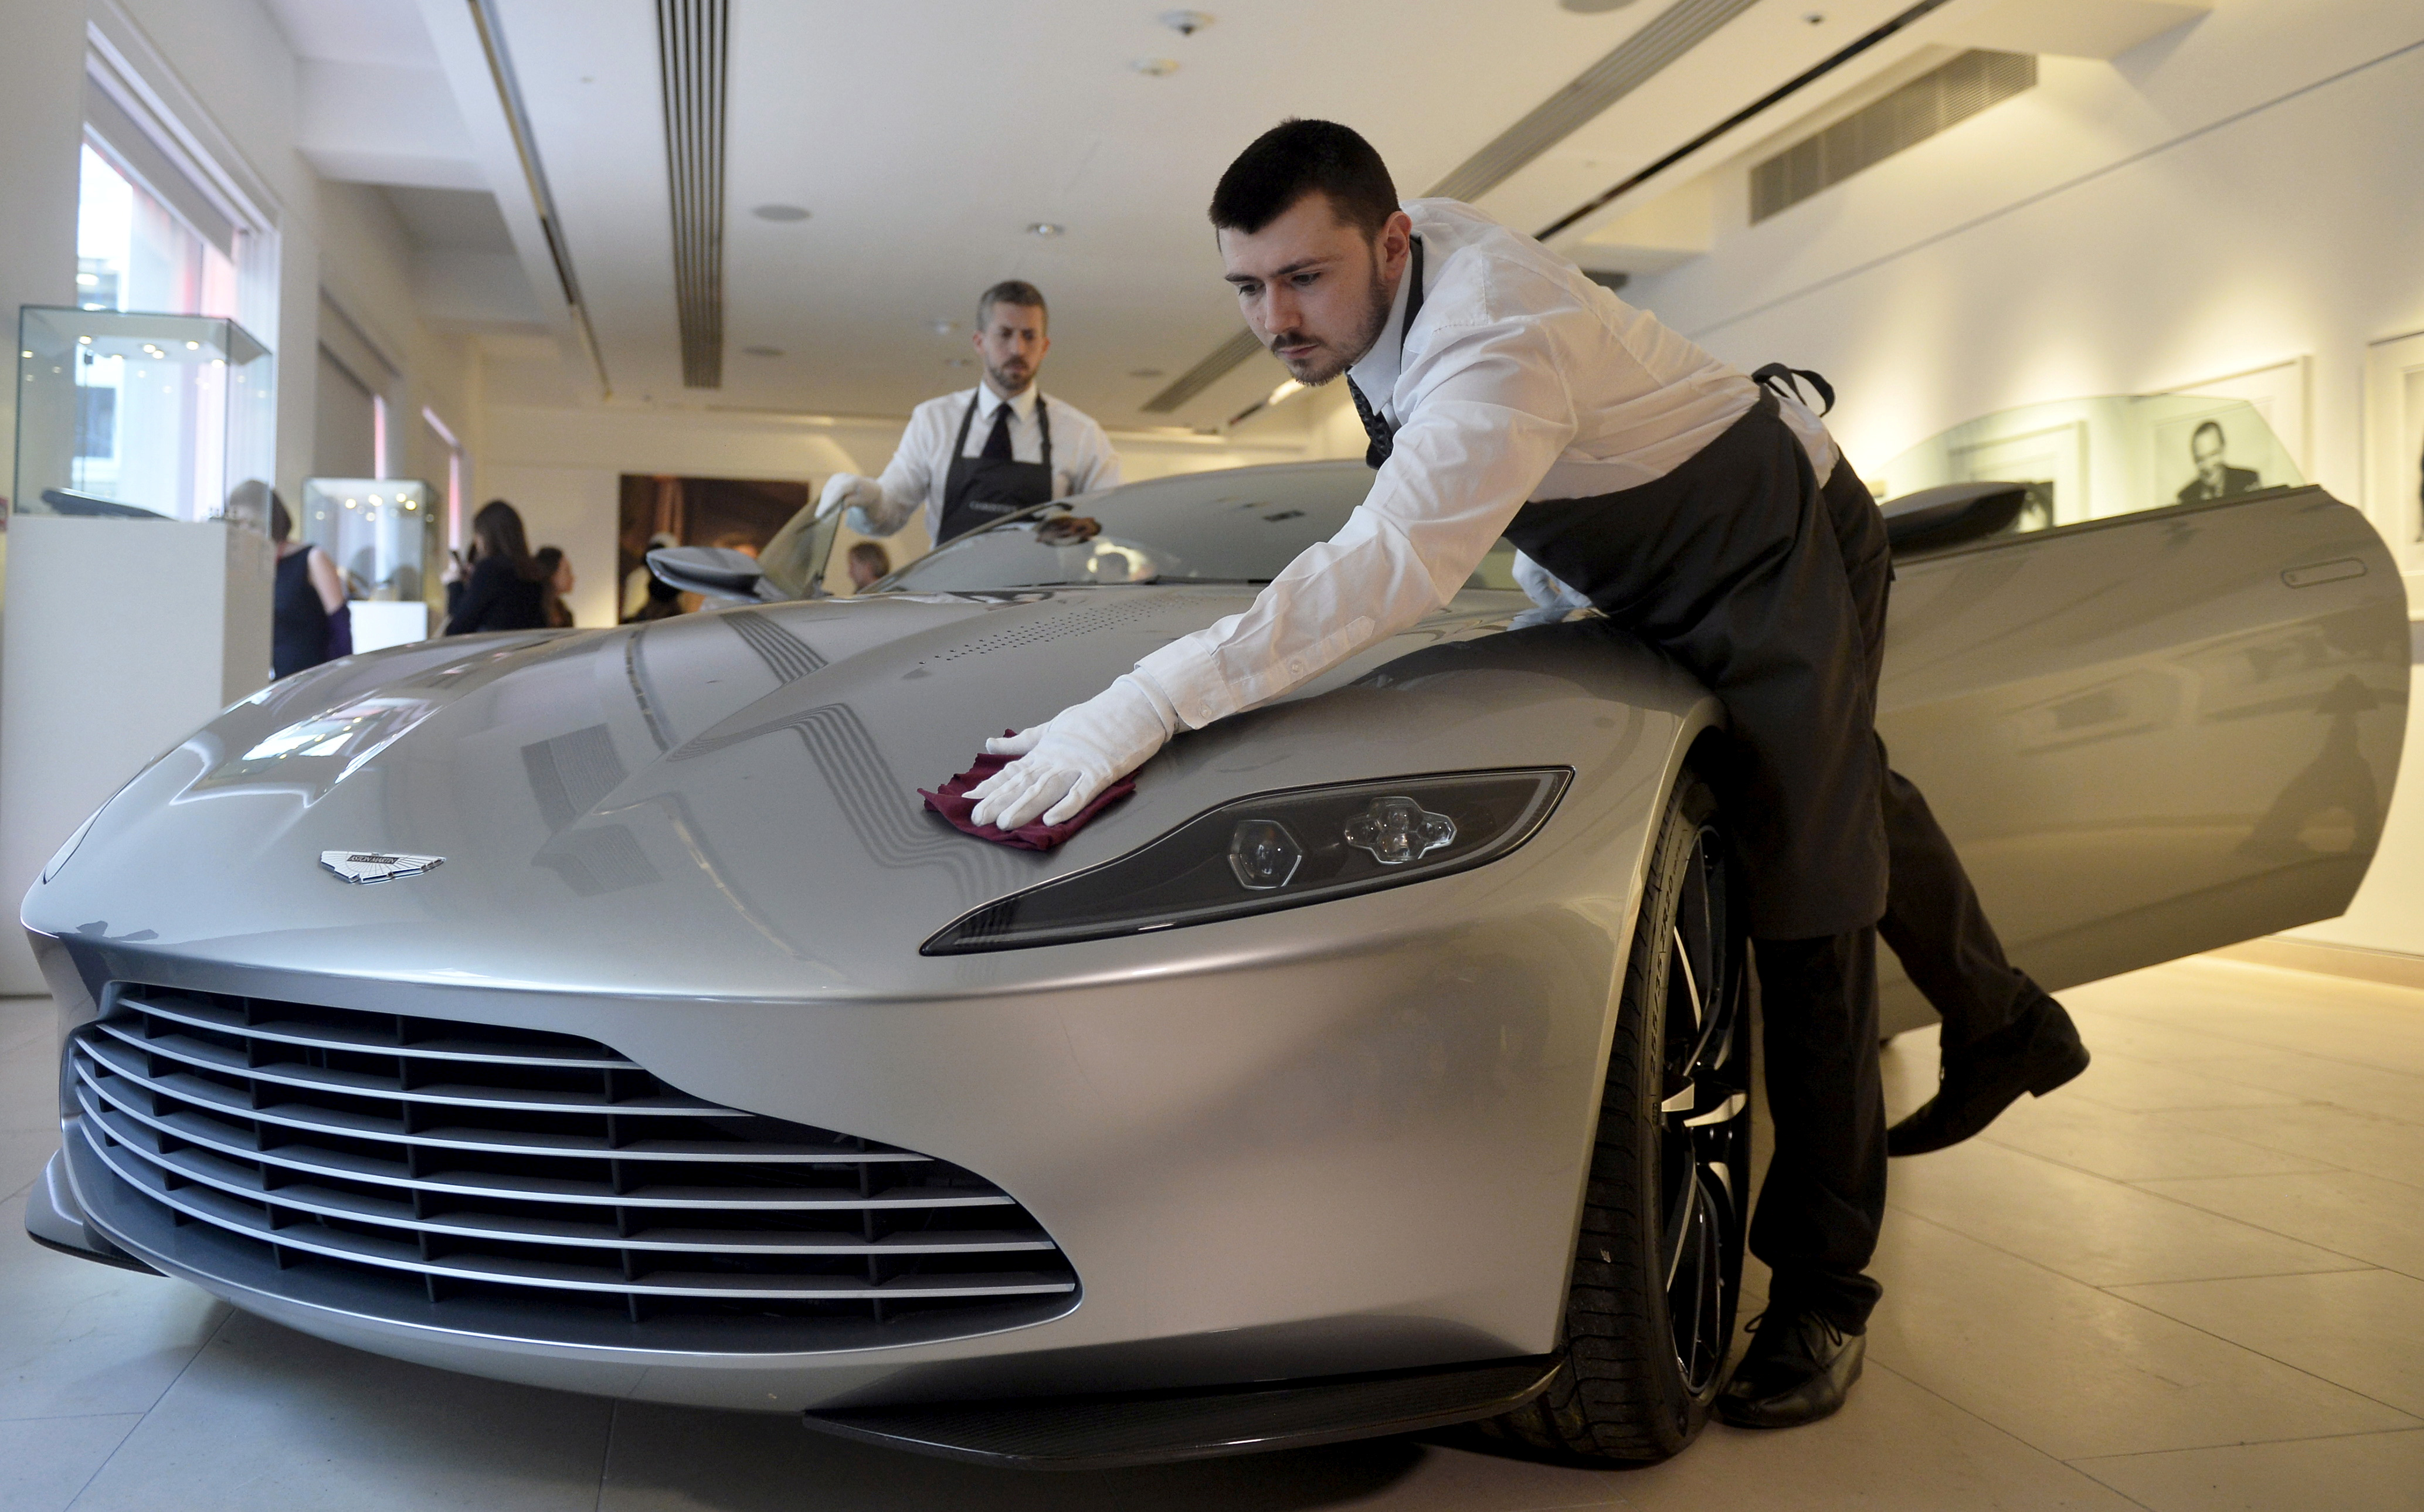 Aston Martin Plans To Squeeze In Its Ipo Before Brexit Quartz